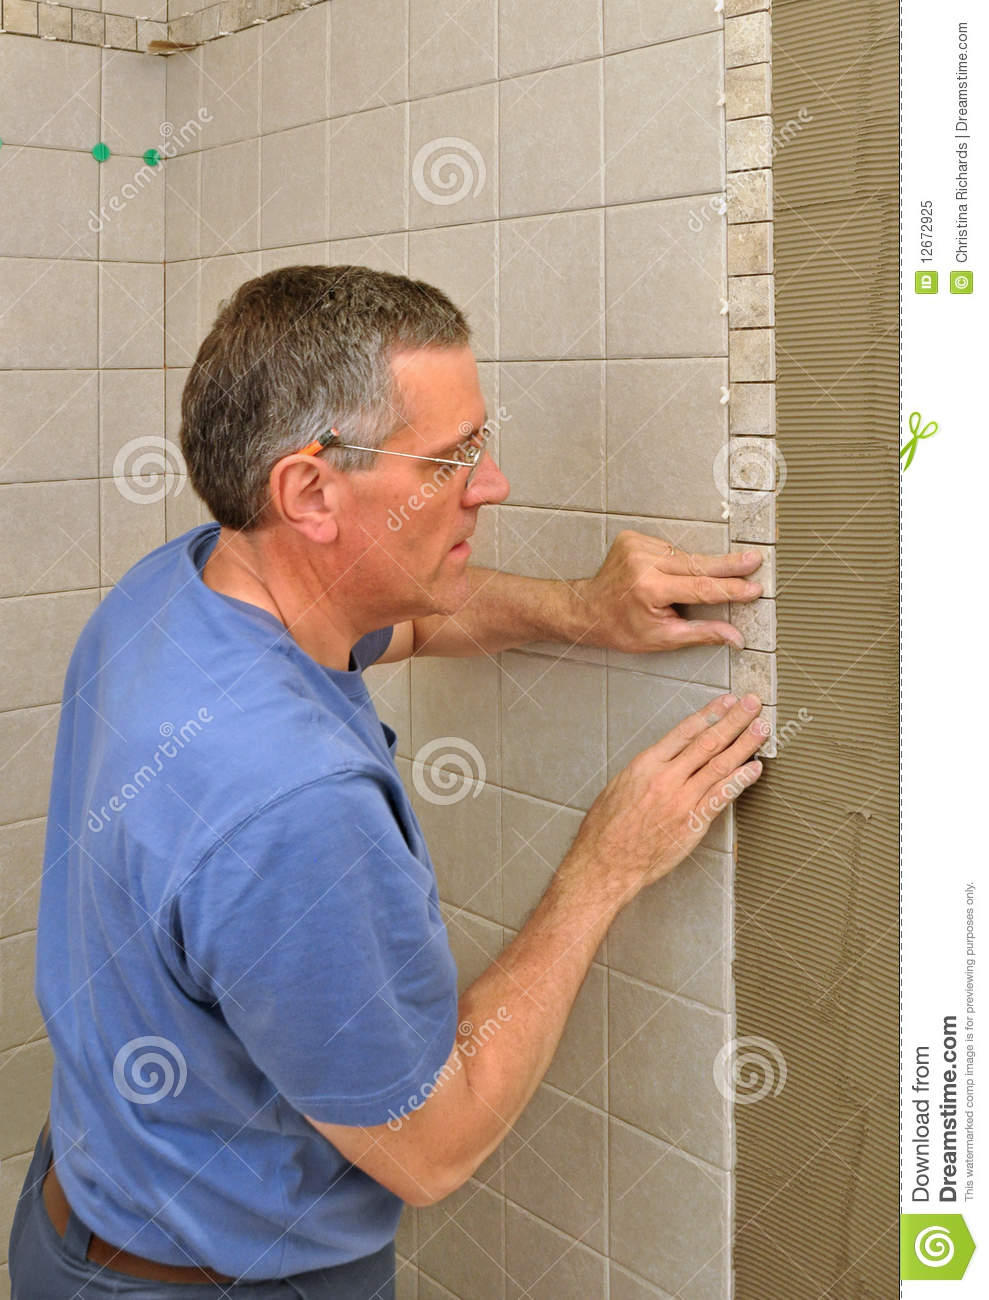 Man Installing Ceramic Tile Border Stock Image Image Of